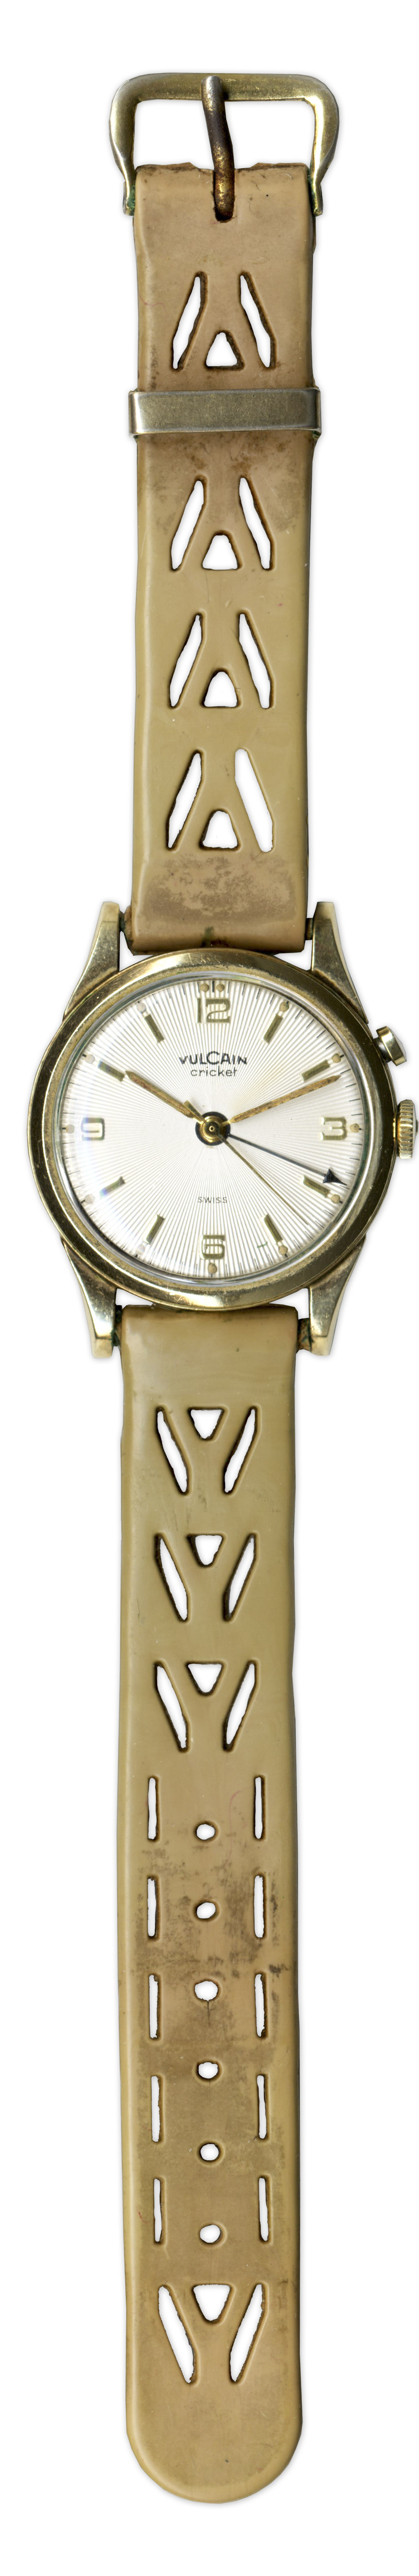 Harry Truman Memorabilia Vulcain Cricket Watch From the Estate of President Harry S. Truman